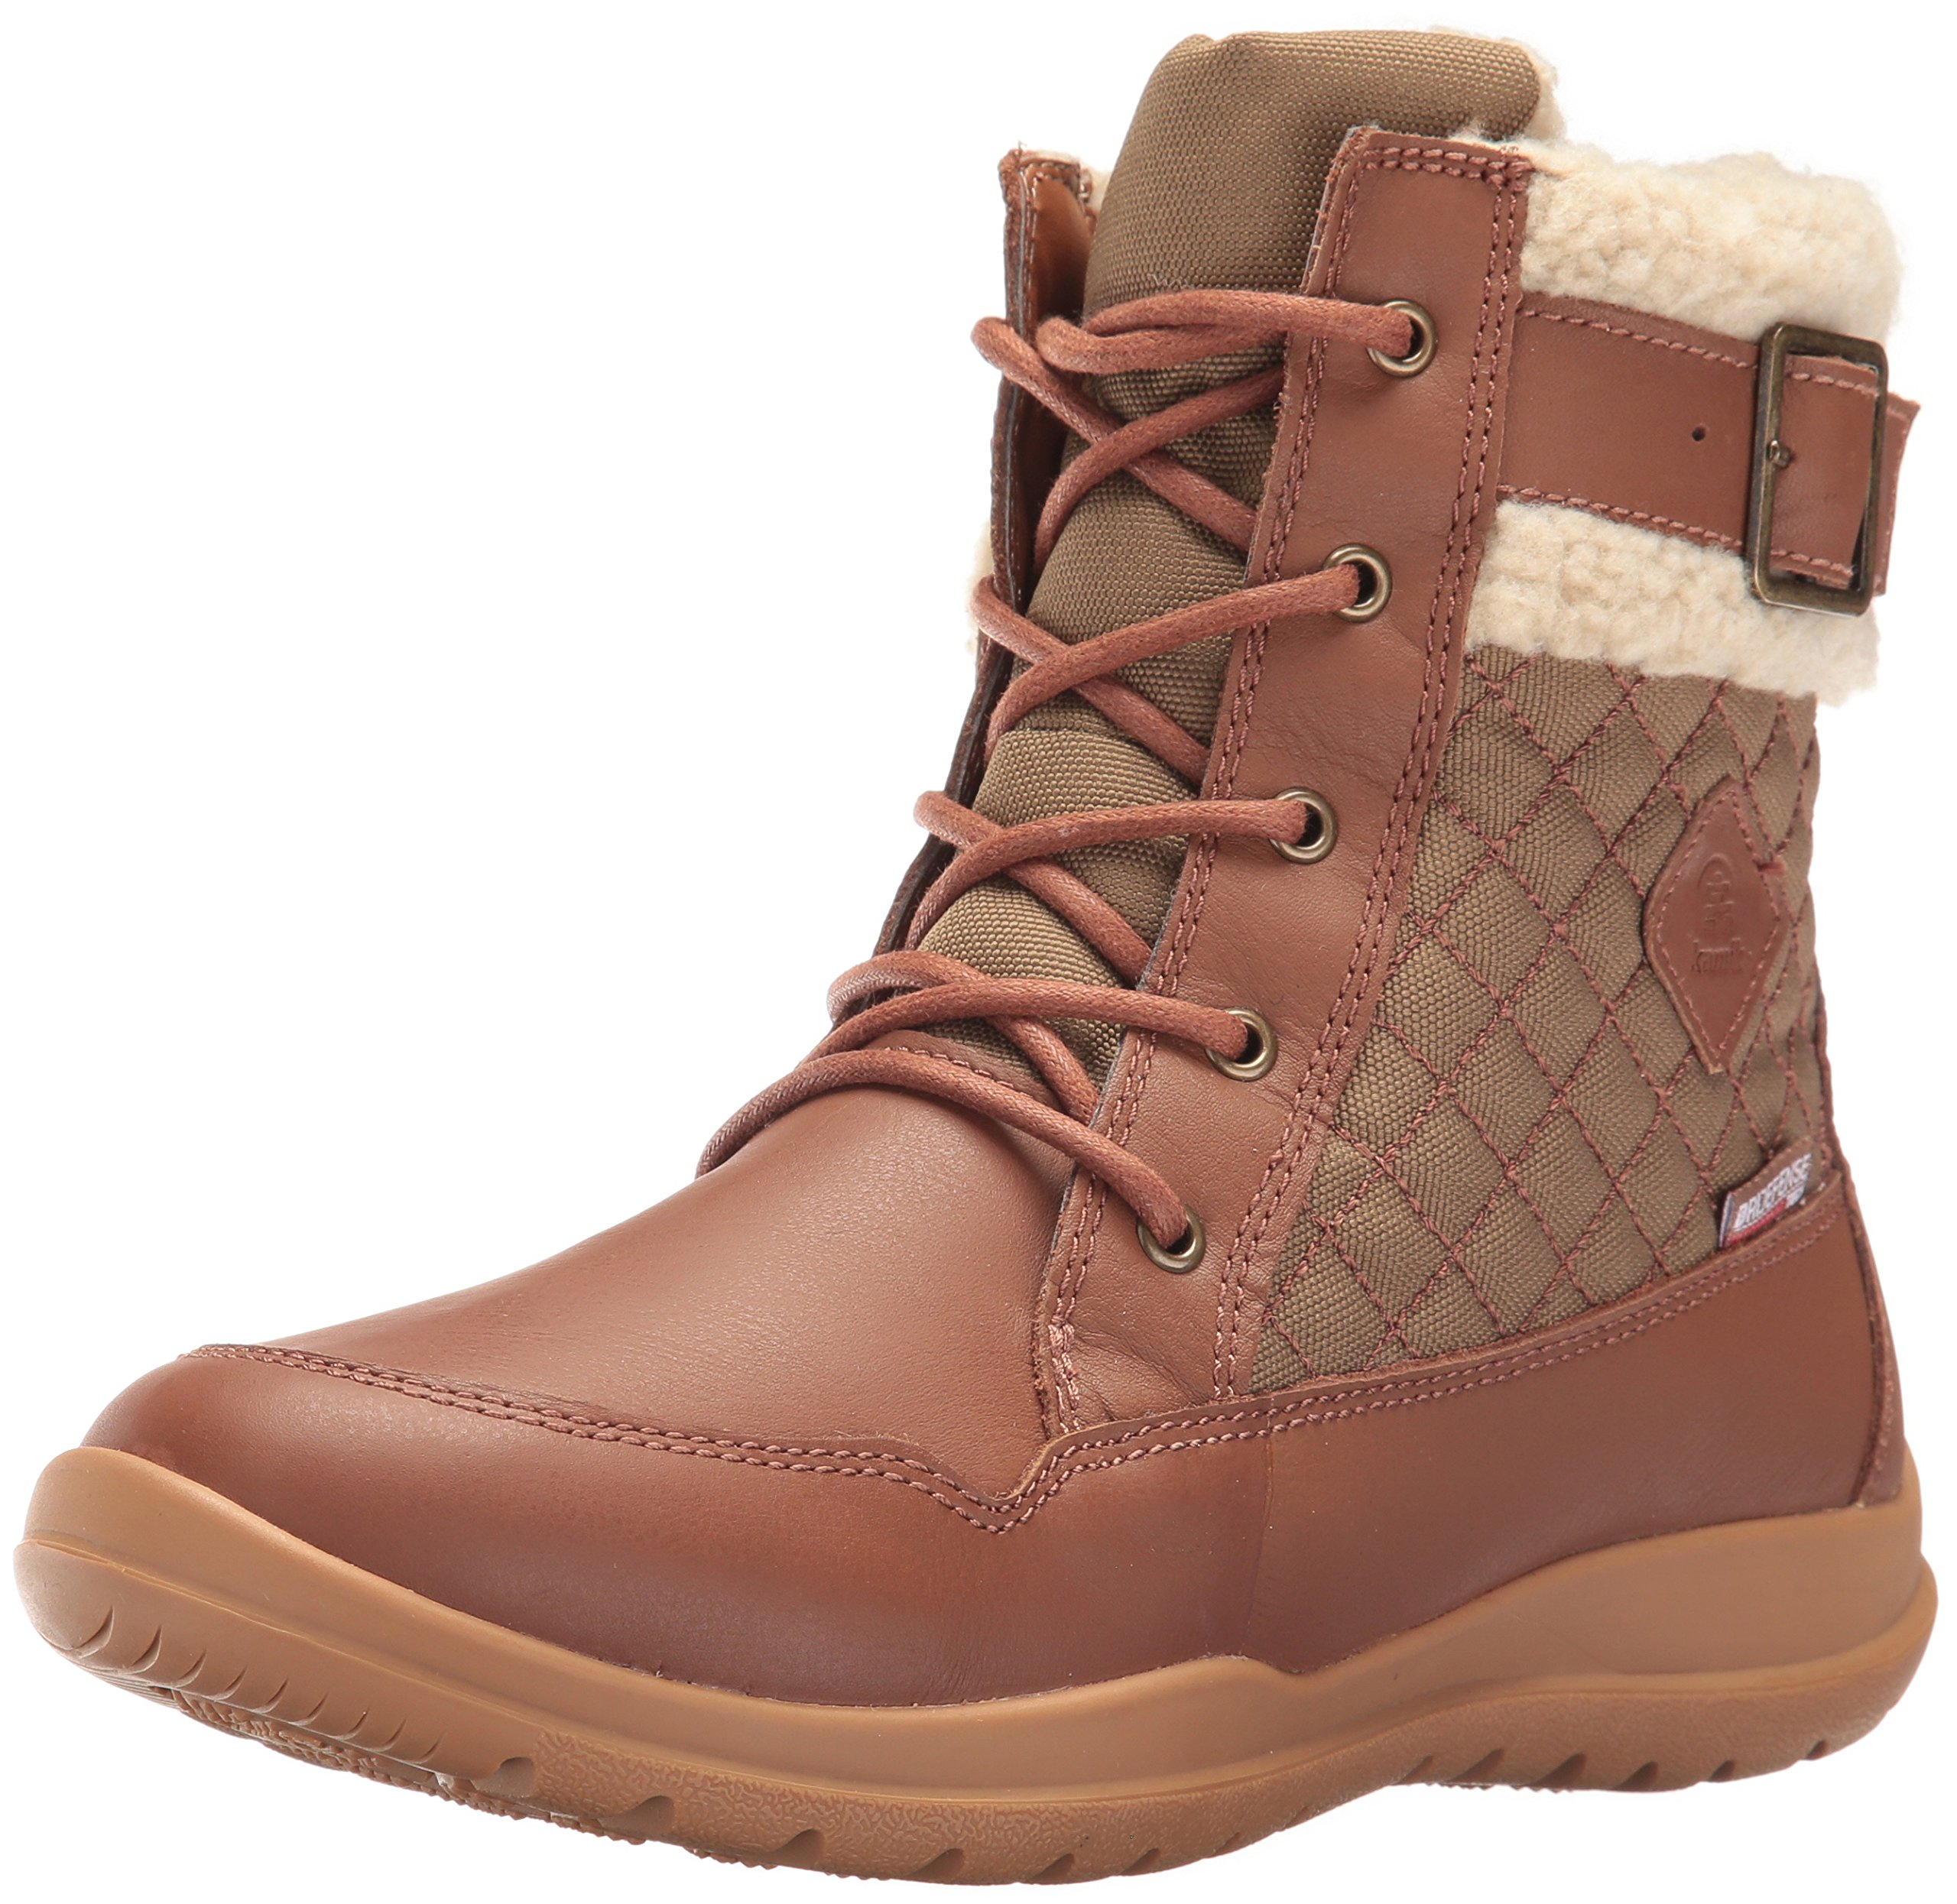 Kamik Women's Barton Snow Boot, Tan, 10 M US by Kamik (Image #1)